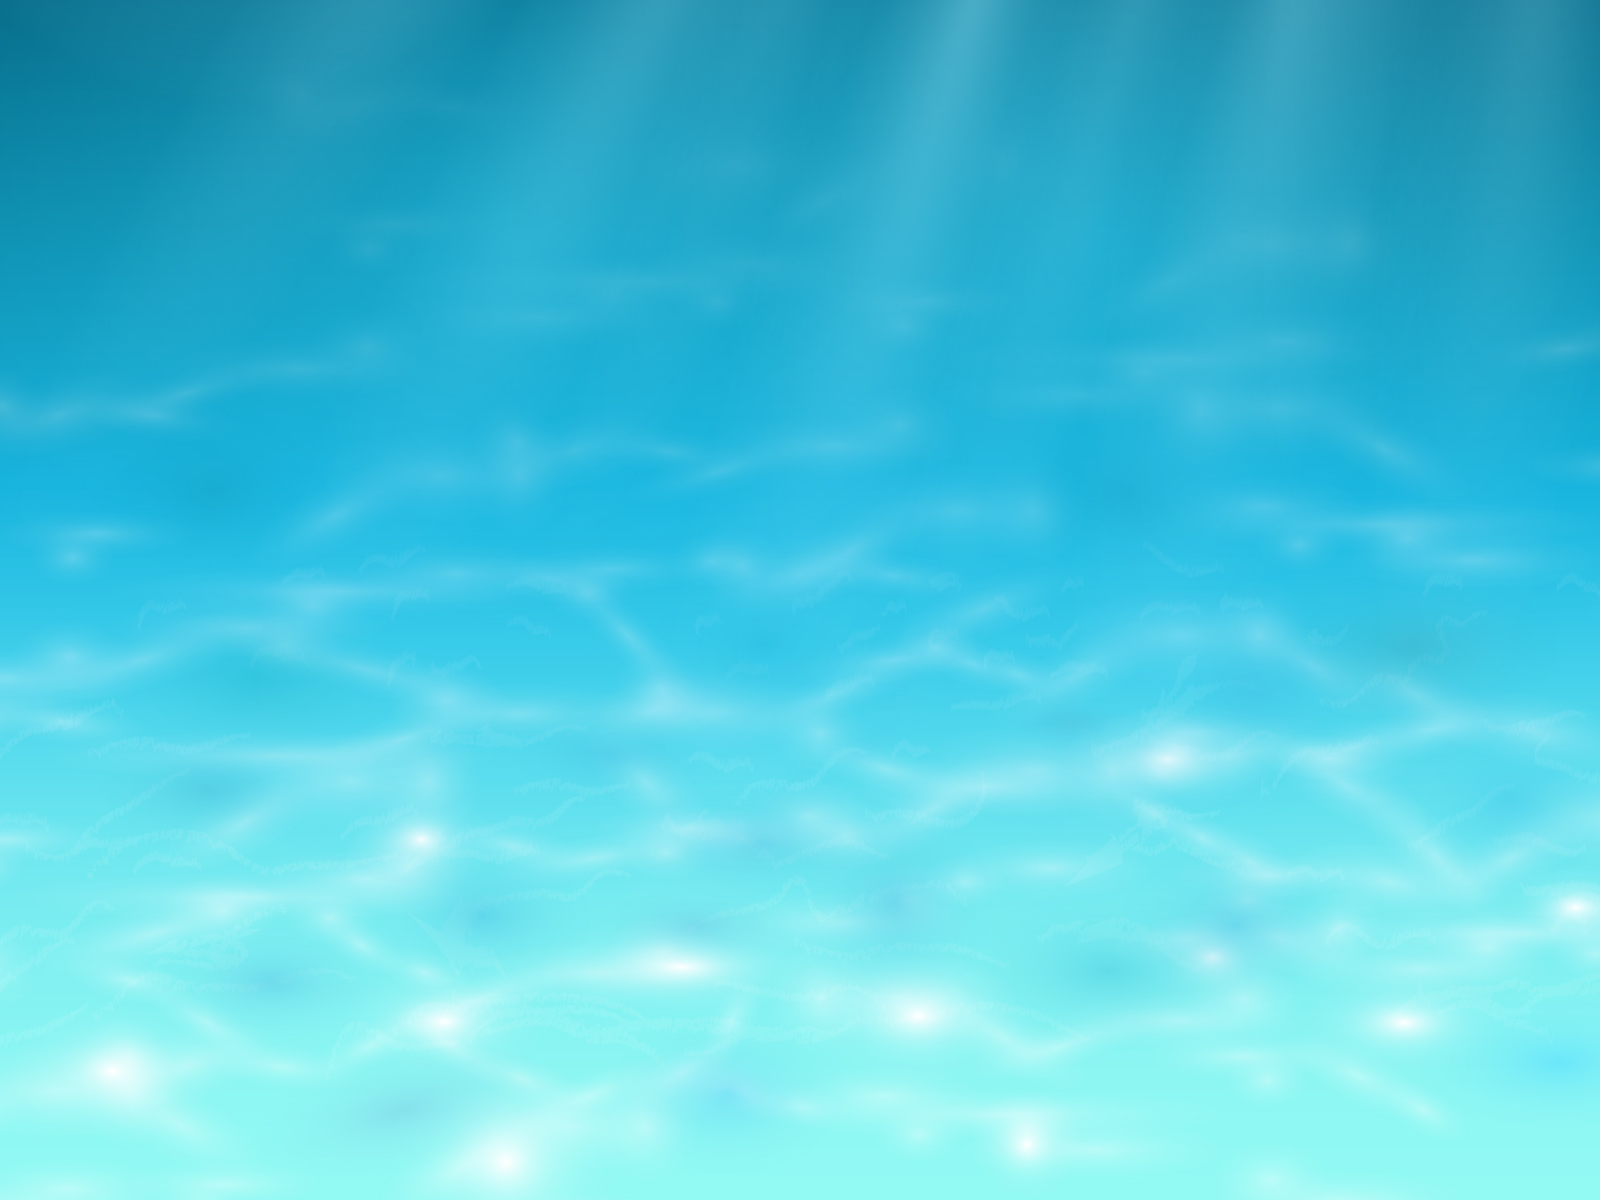 Blue Water clipart background powerpoint Pinterest Powerpoint background  powerpoint